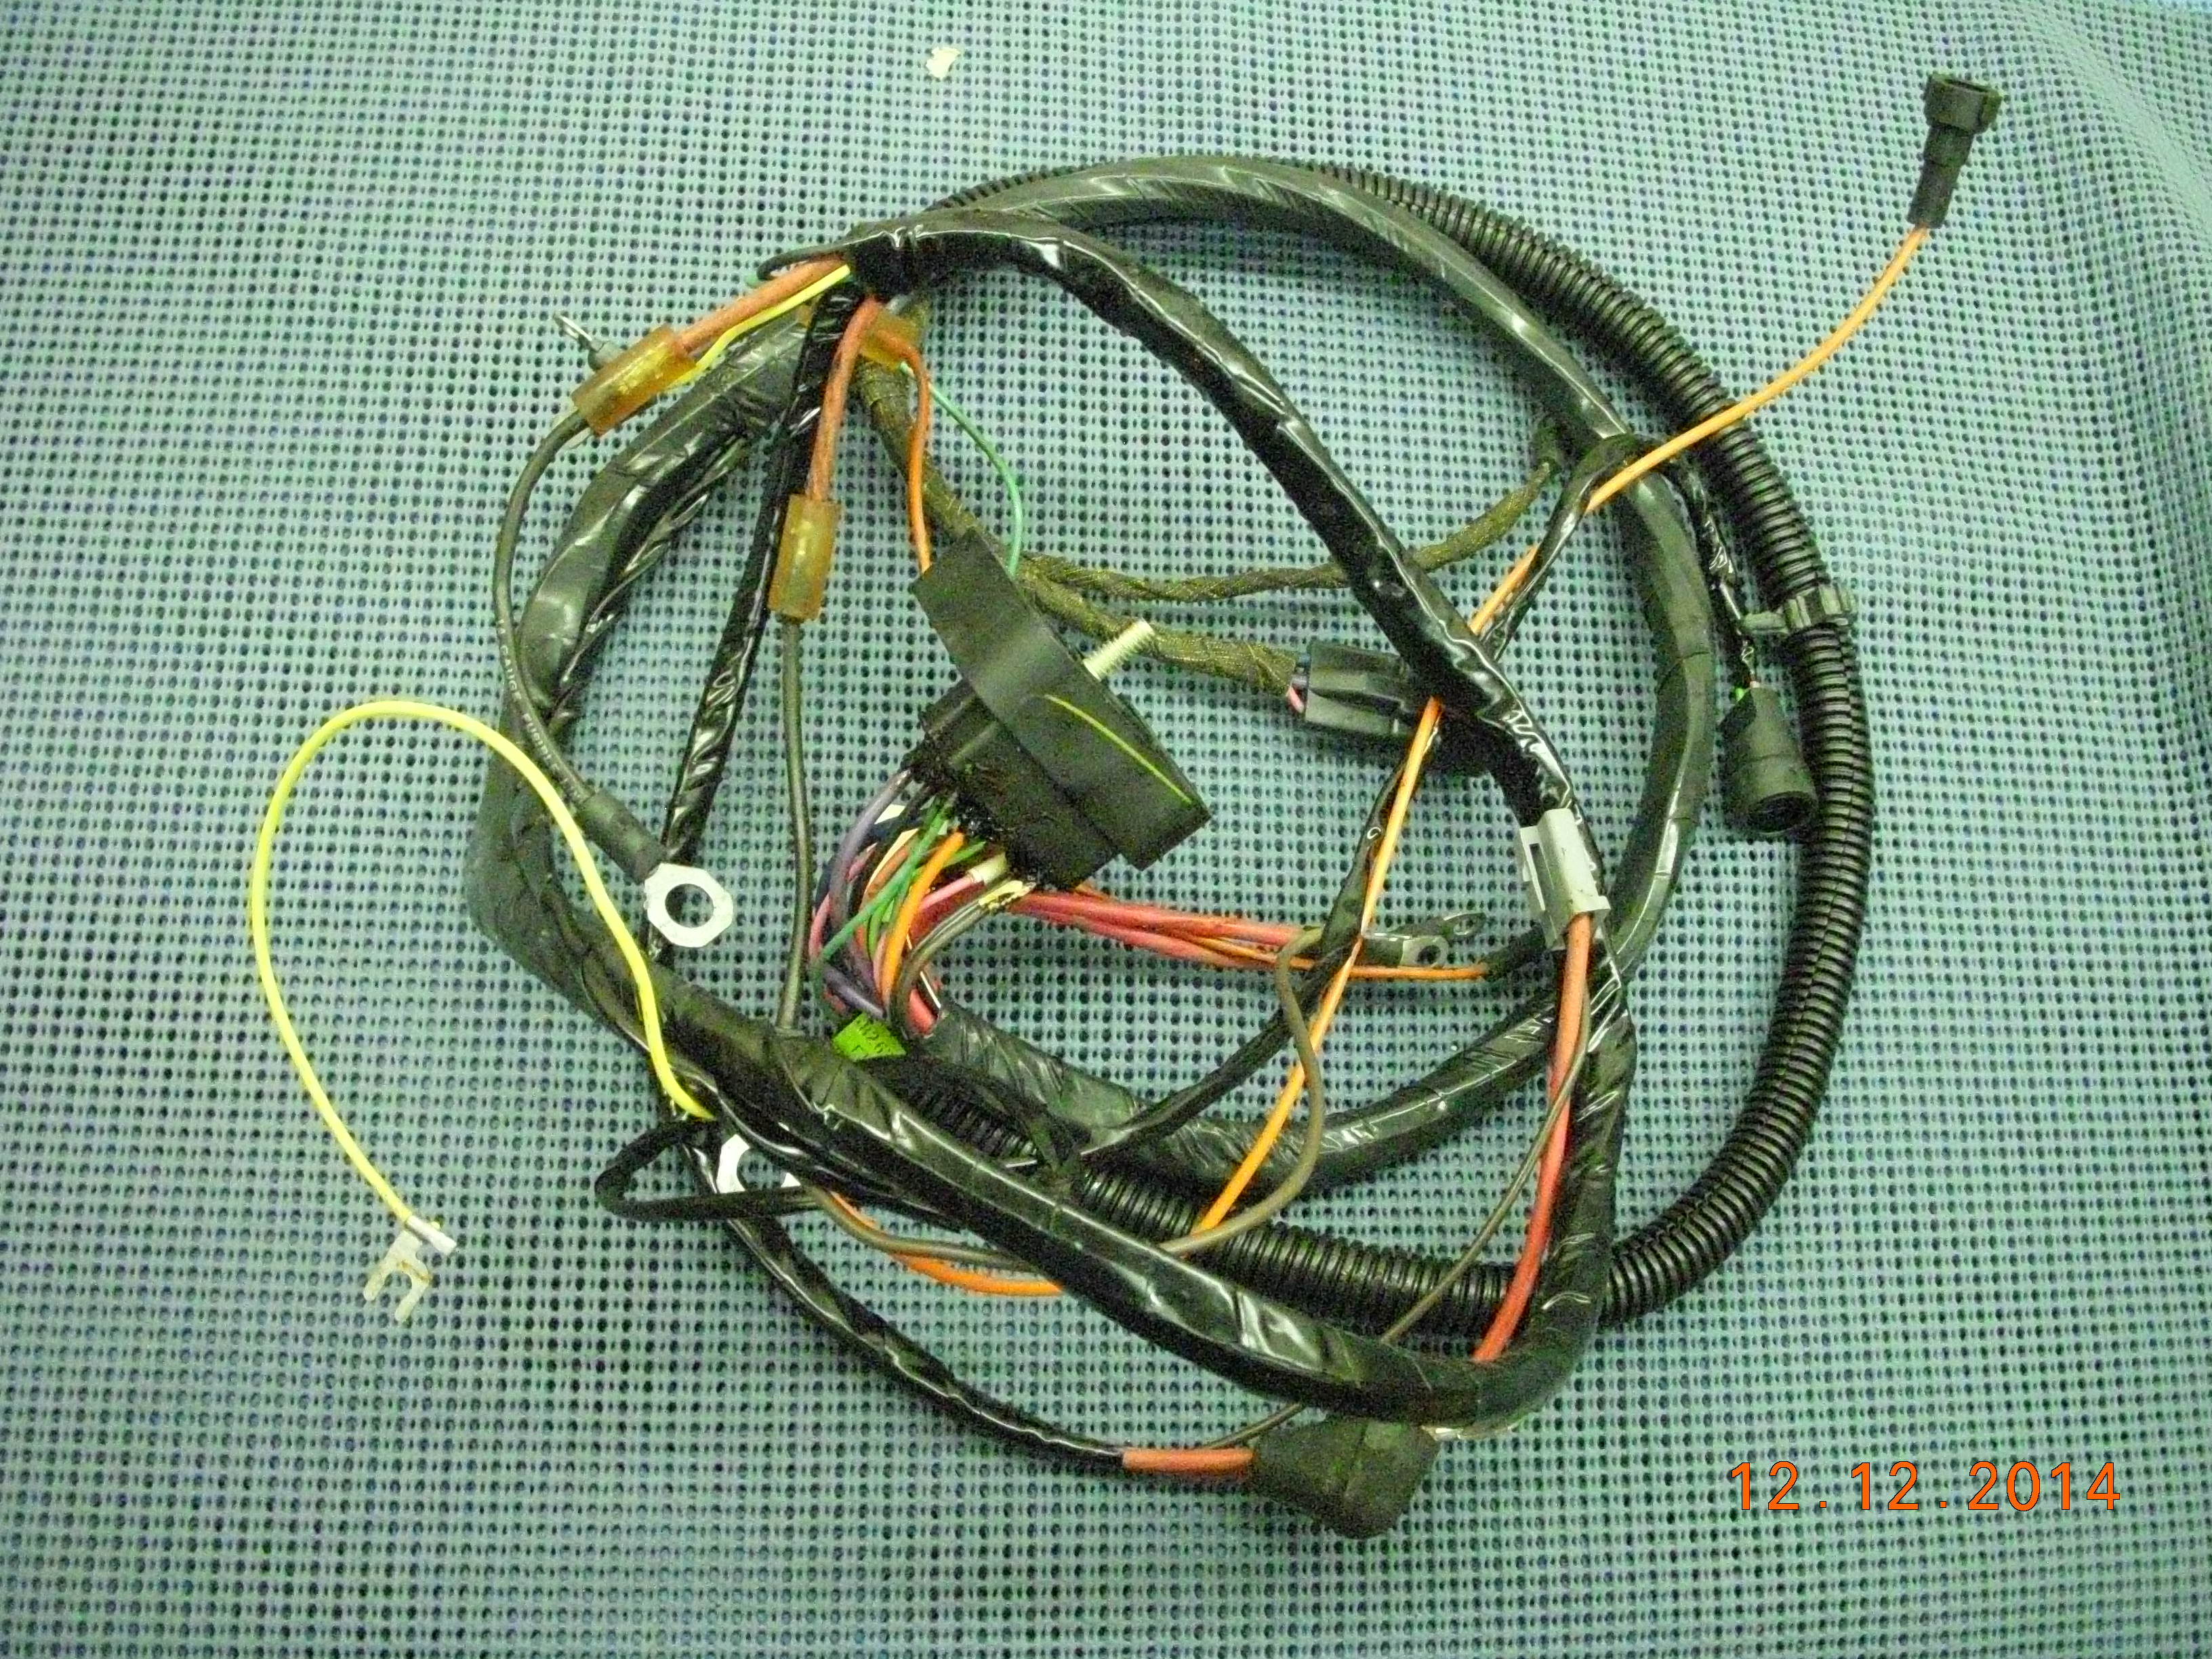 1973 chevrolet vega engine and generator wiring harness nos rh oldsobsolete com Chevy Truck Wiring Harness GM Wiring Harness Connectors